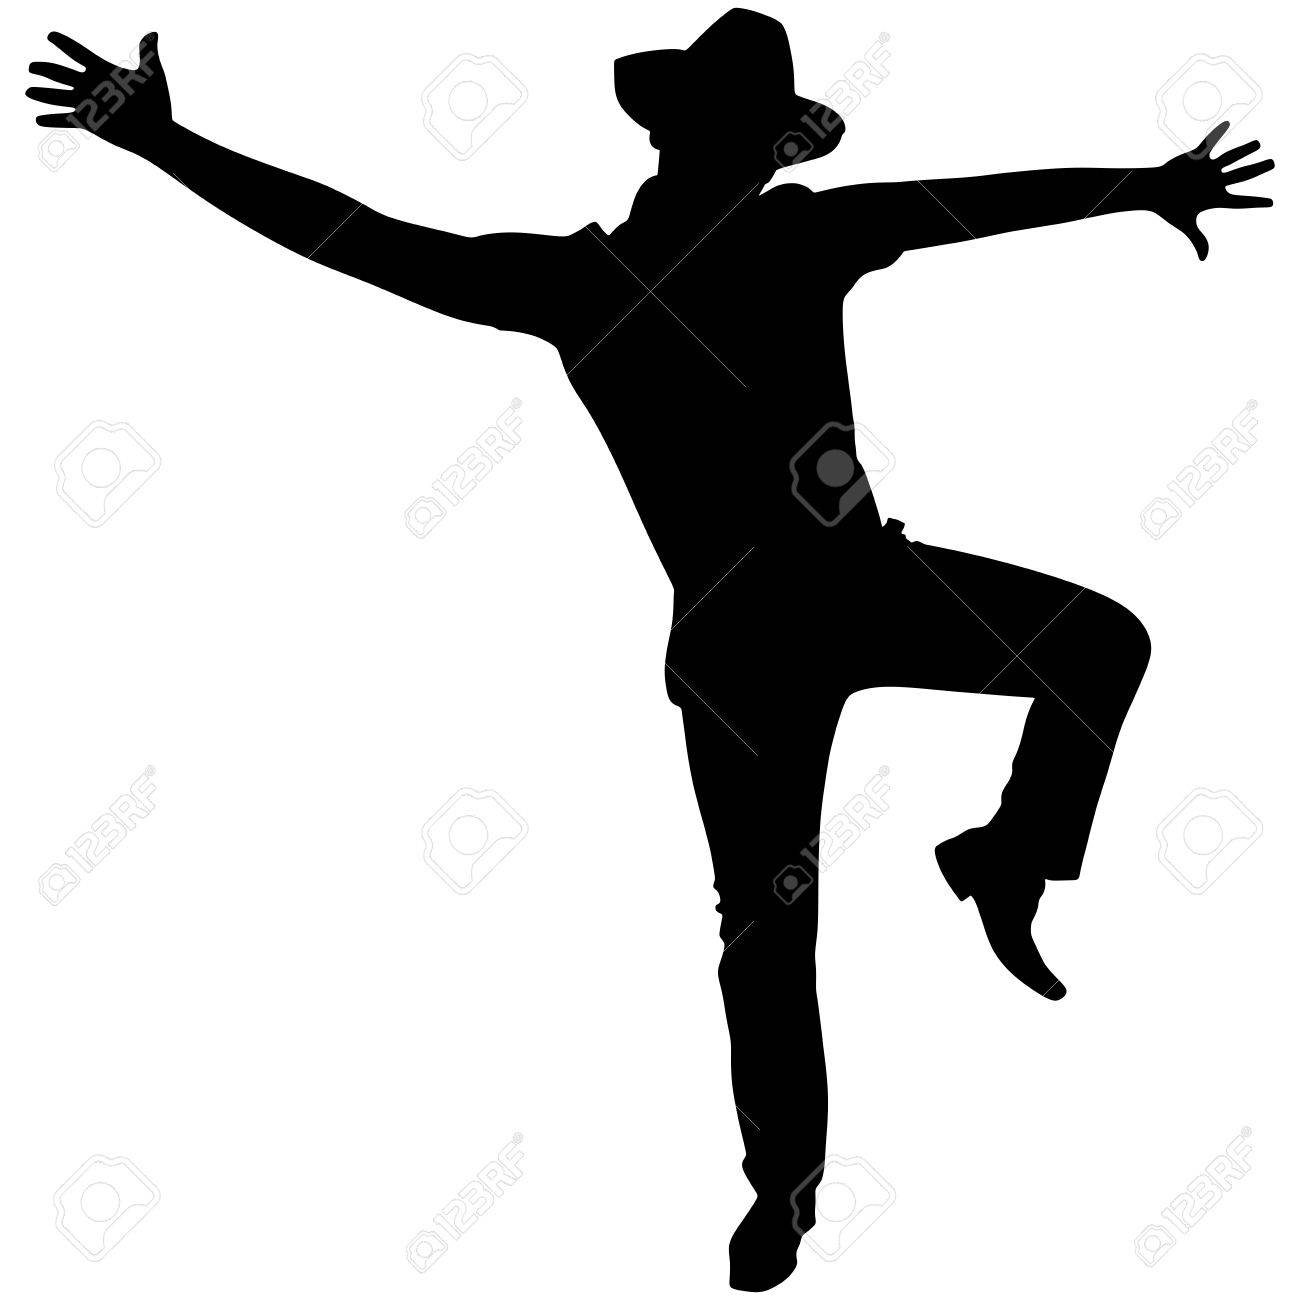 man with hat dancing silhouette vector royalty free cliparts rh 123rf com free vector dance silhouette dancing crowd silhouette vector